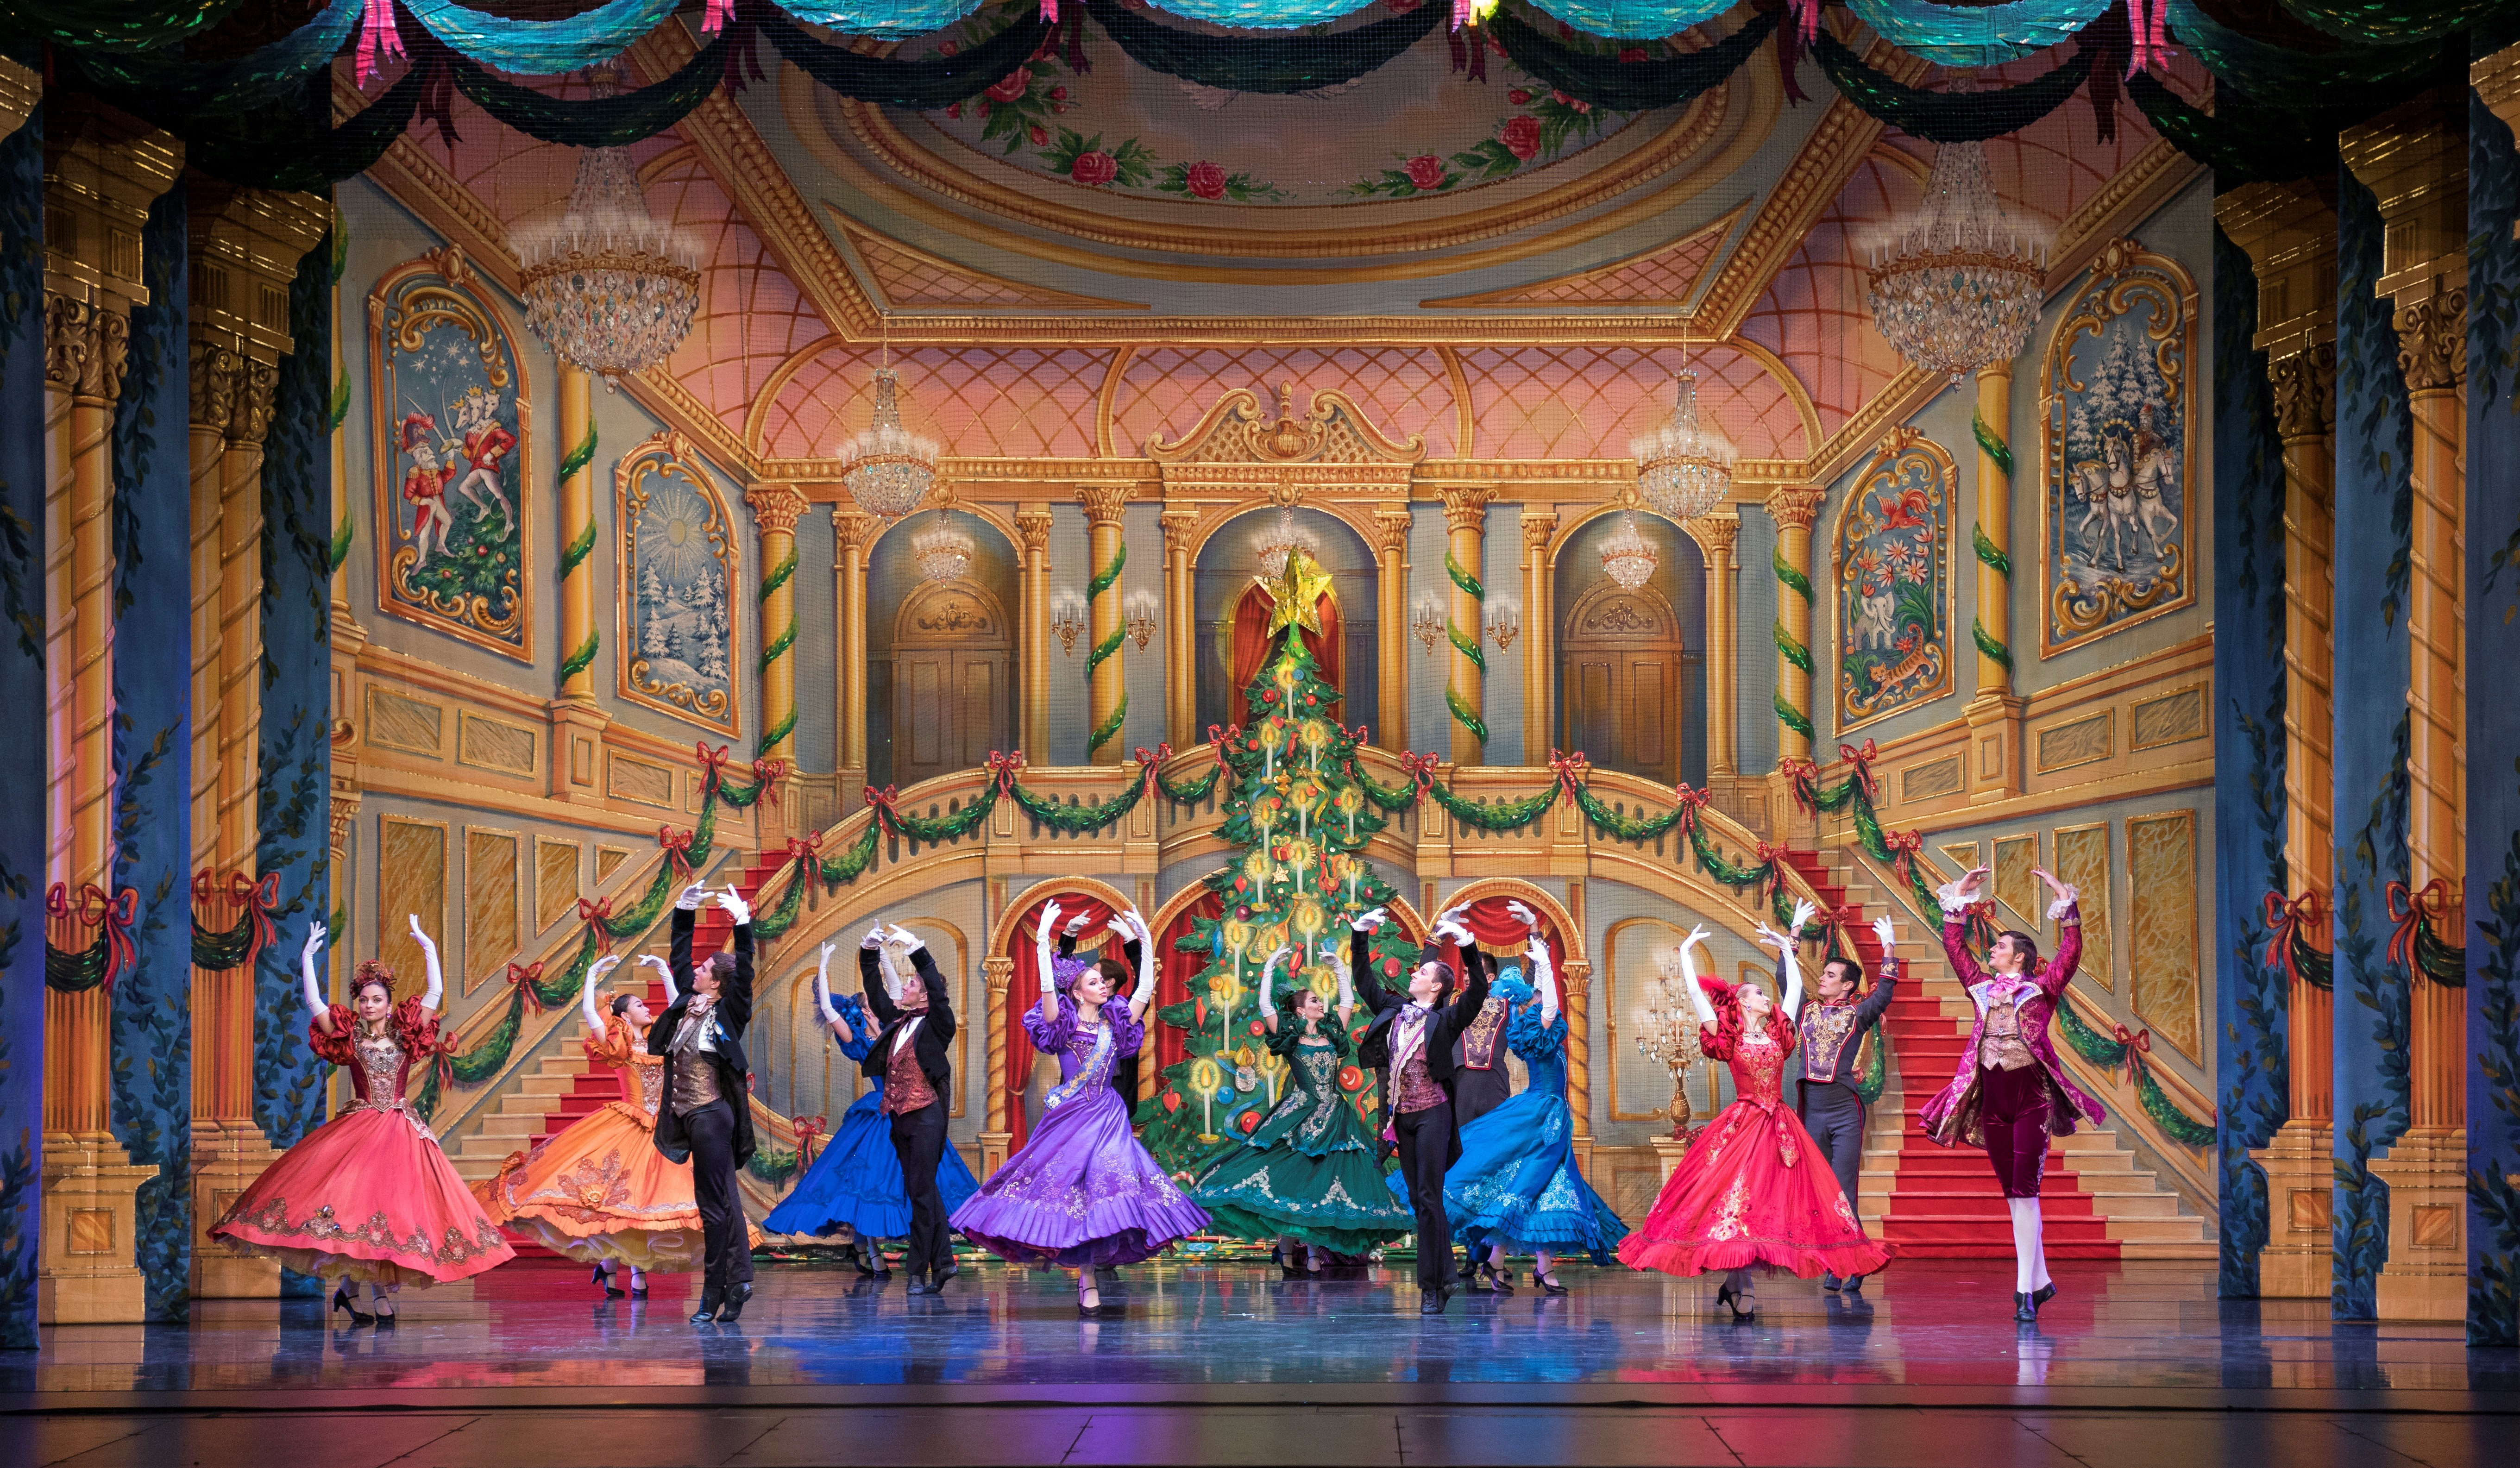 4. The Party Scene in the Great Russian Nutcracker, Sets C Sprague